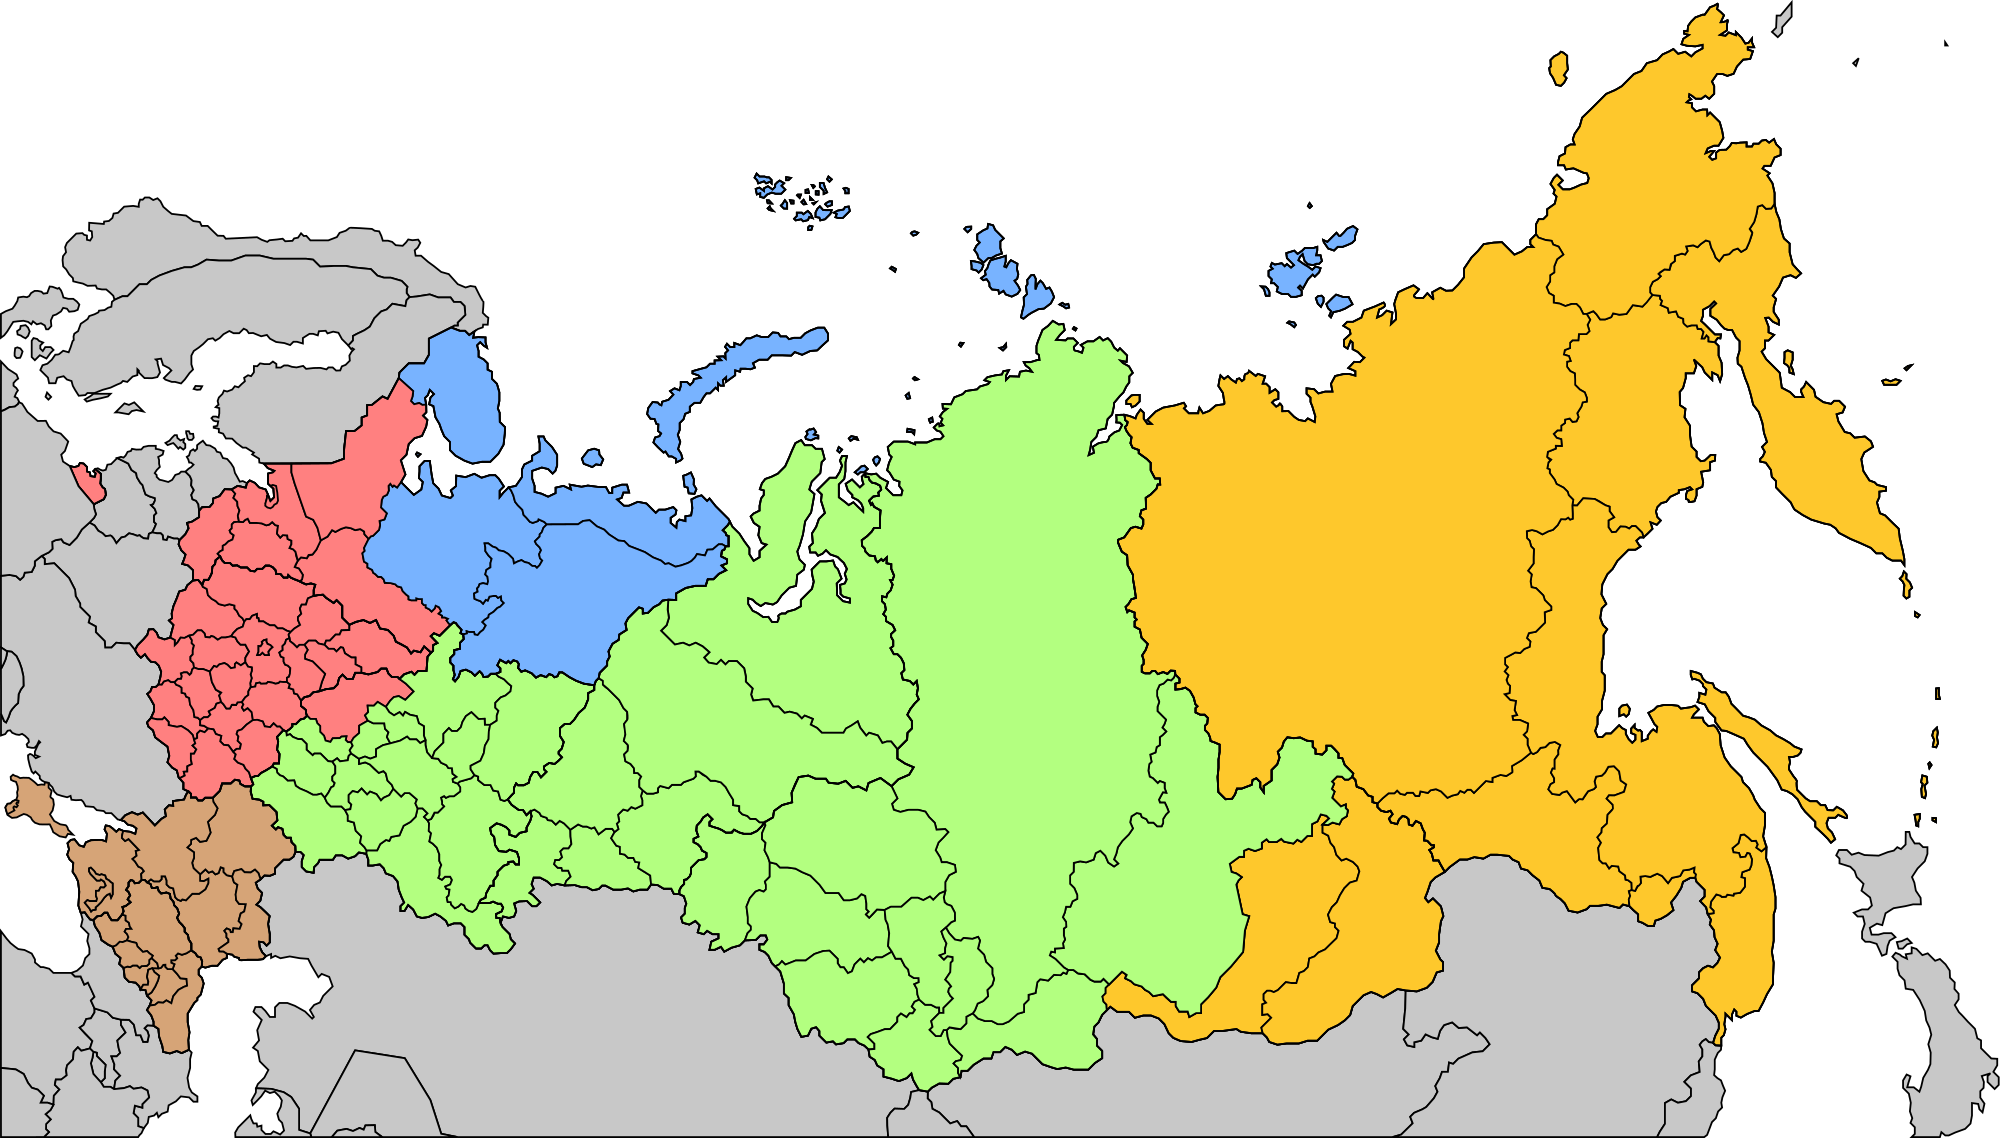 Military districts of Russia